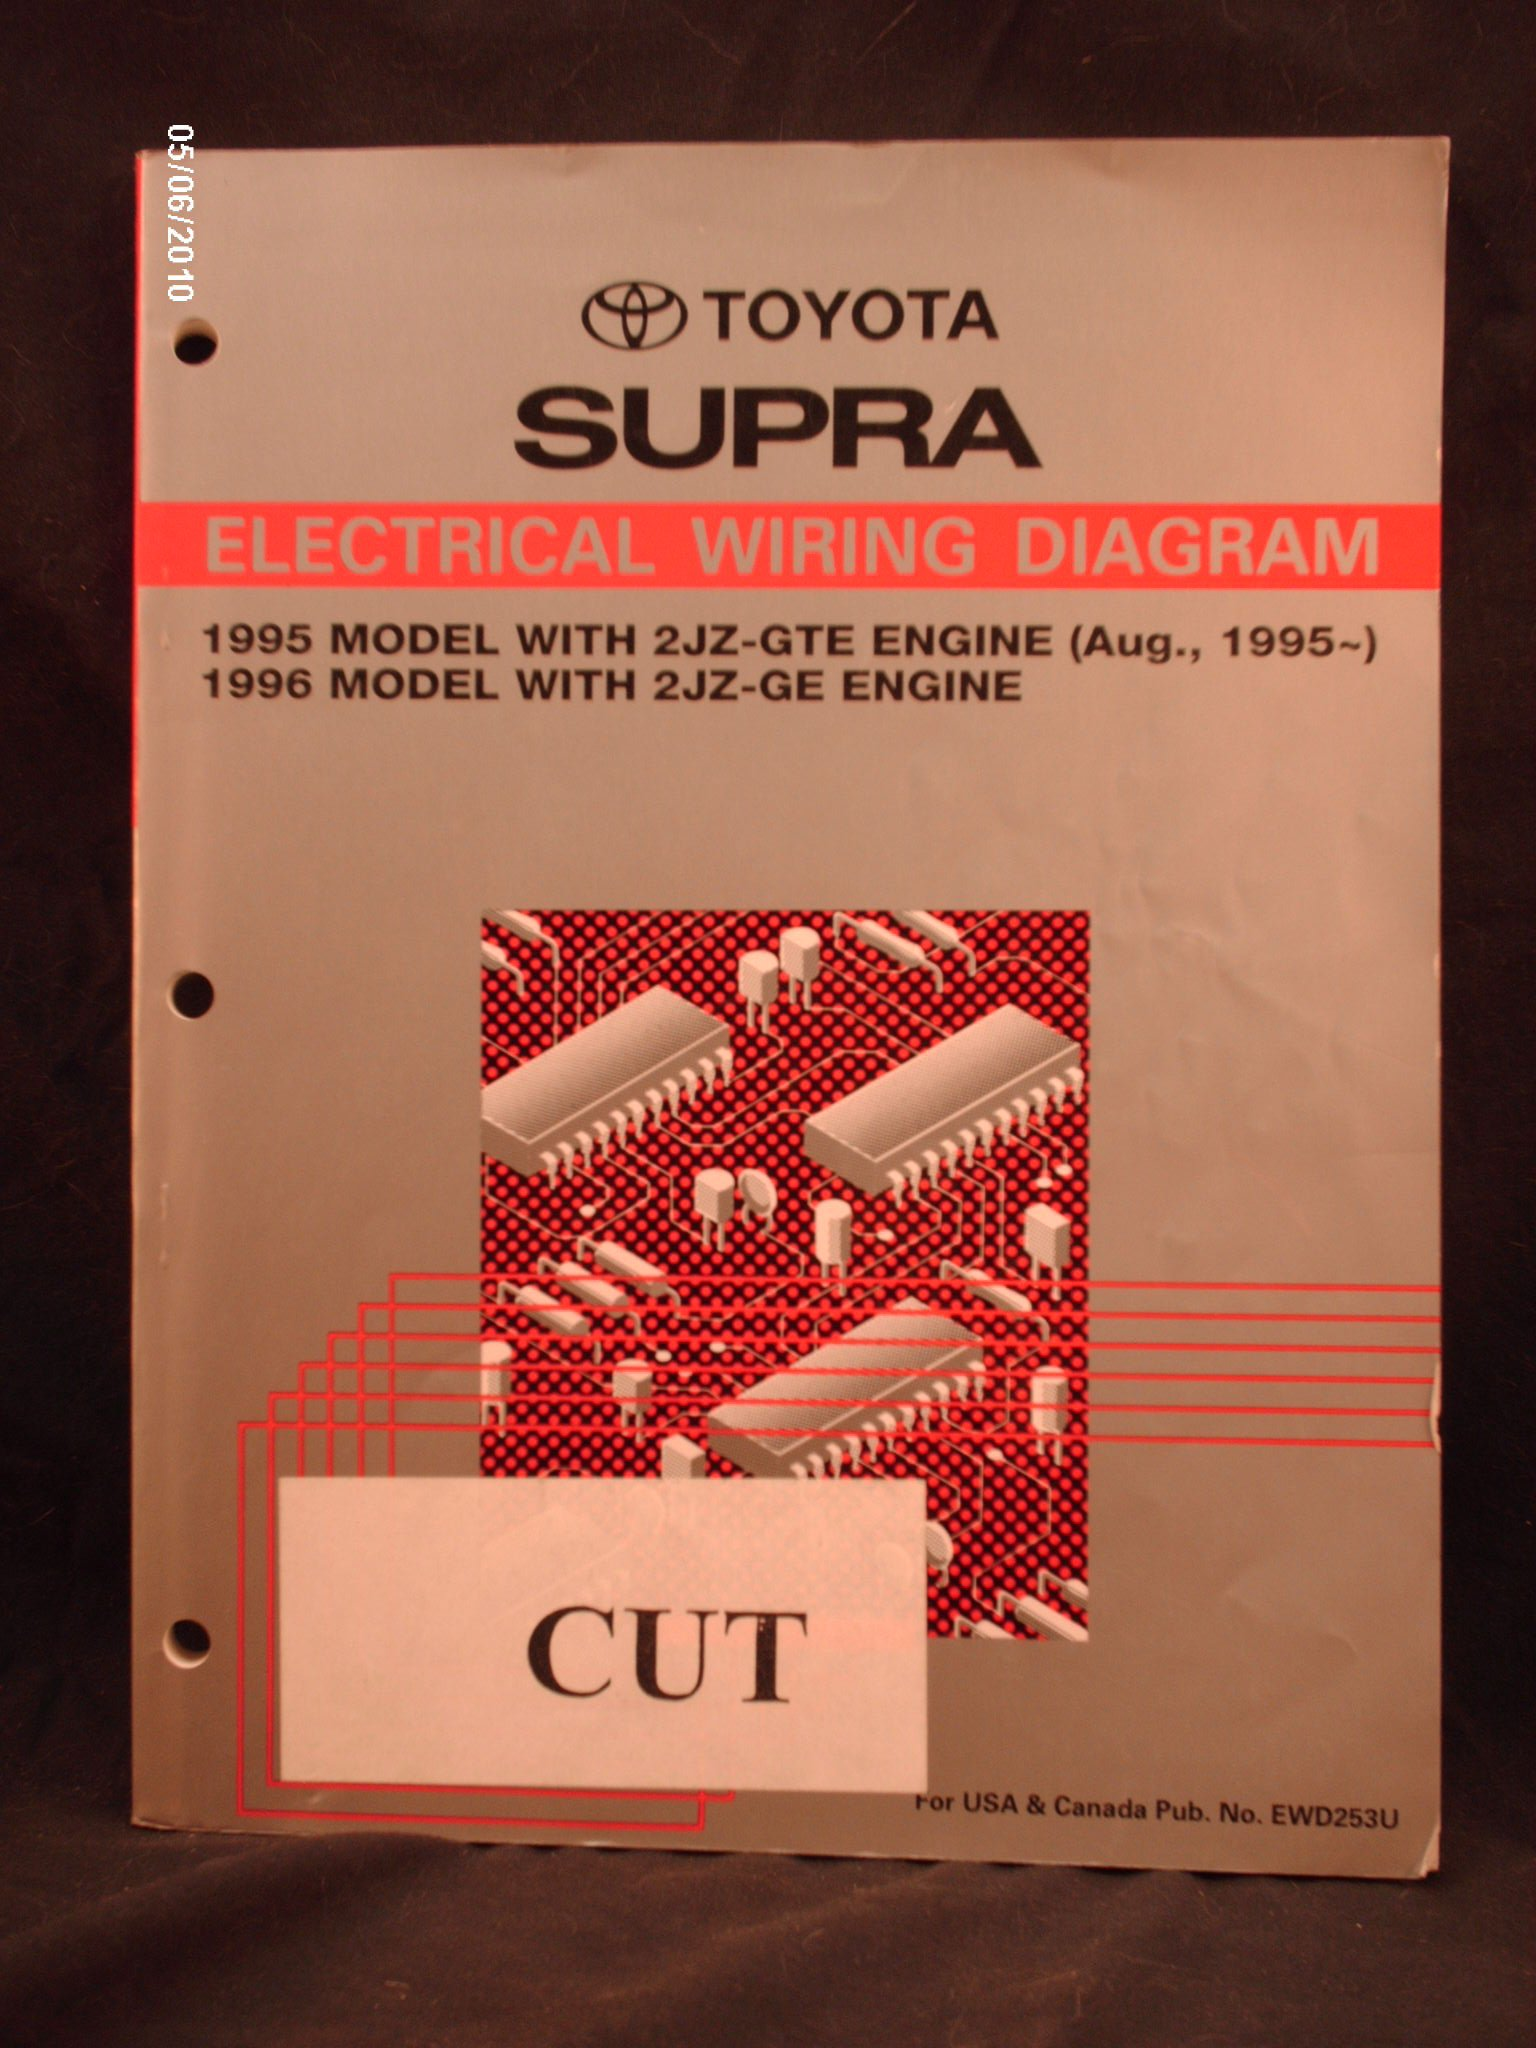 1996 Toyota Aristo Wiring Diagram Library Jzs16x Electrical Book 6748505 1995 Supra Shop Repair Manual Model With 2jz